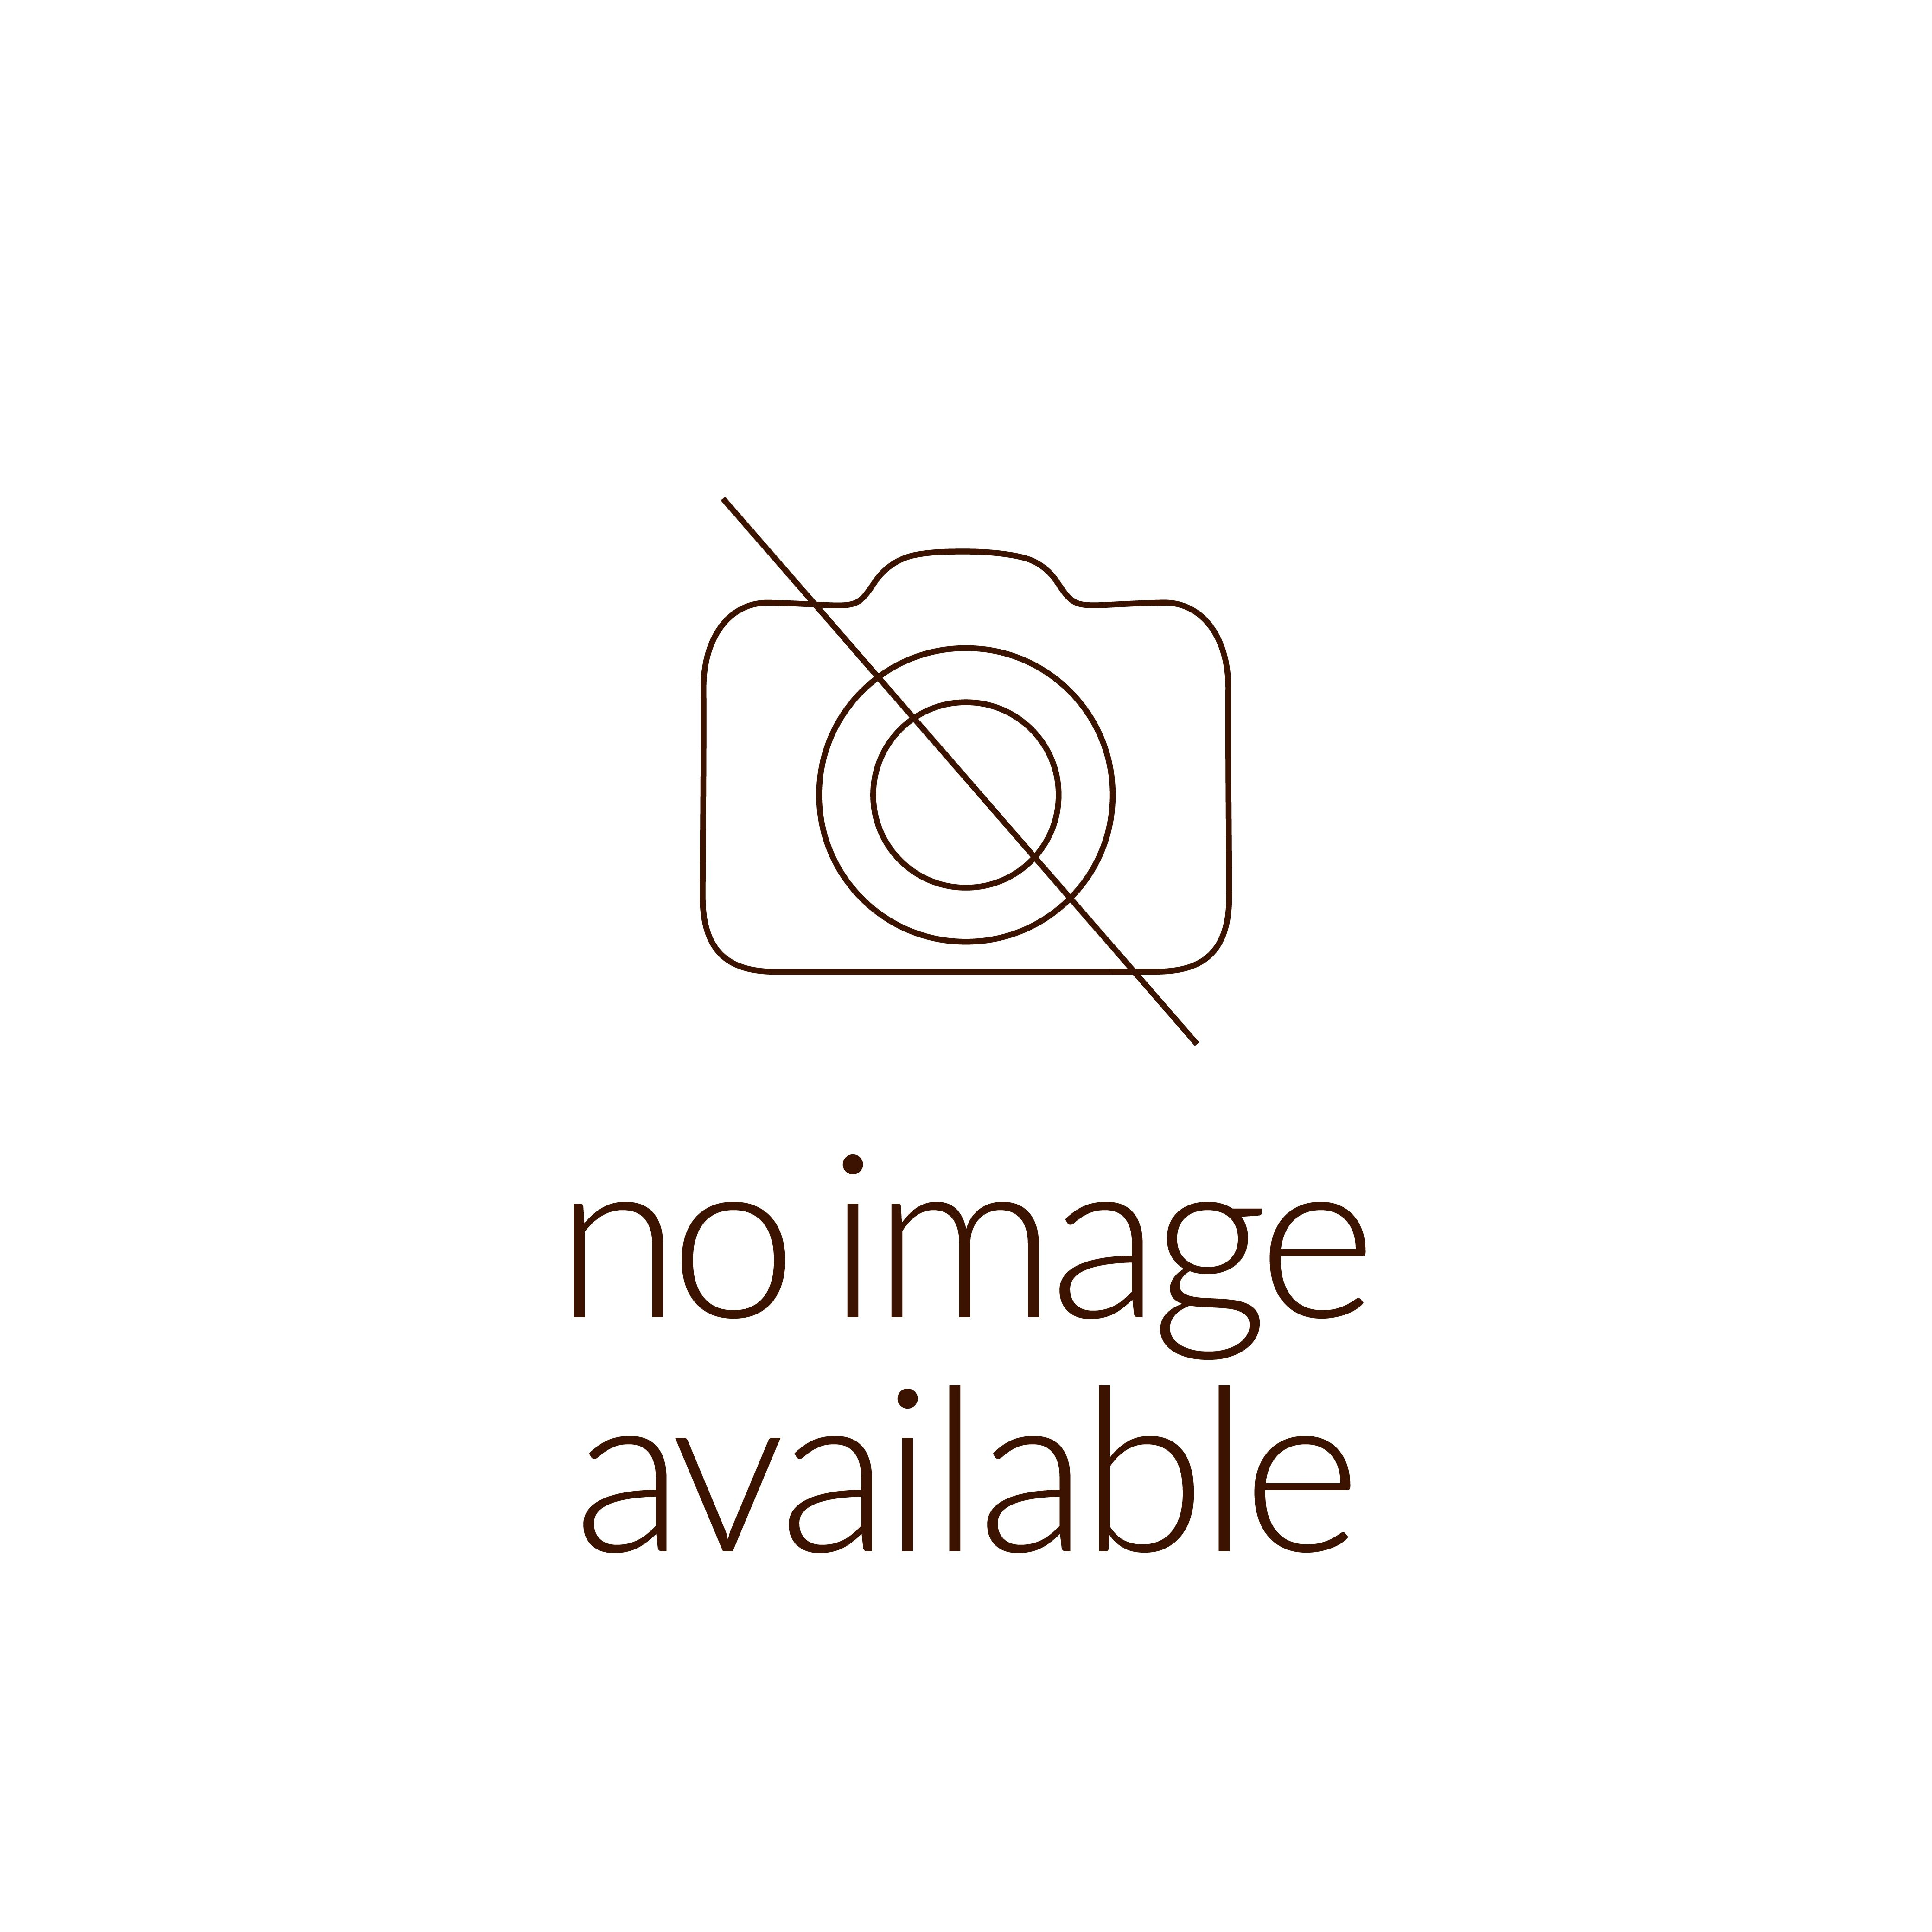 Commemorative Coin, Adam and Eve , Gold 999, Proof, 13.92 mm, 1.24 gr - Obverse